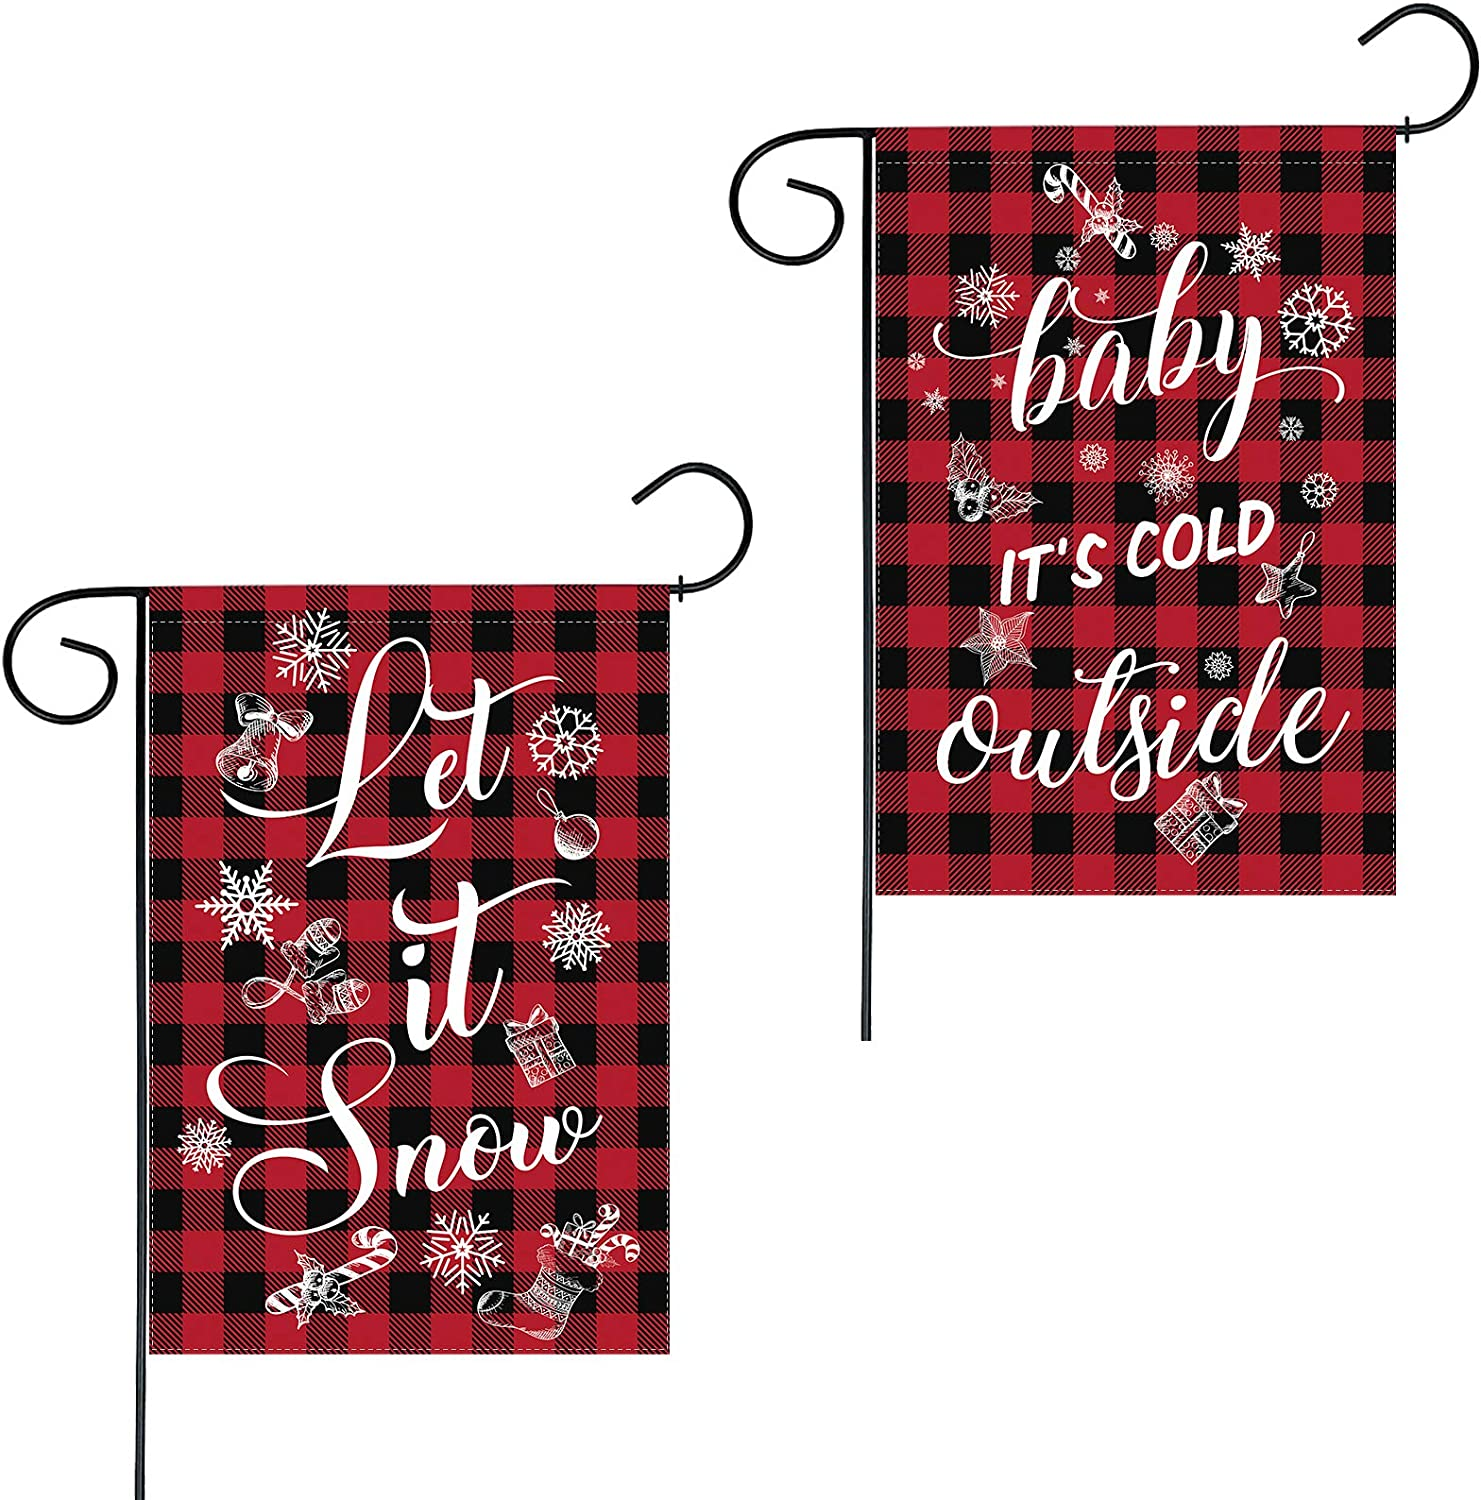 Funnytree 1 Piece Christmas Let It Snow Outdoor Garden Flag Xmas Winter Baby It's Cold Outside Yard Sign Red Buffalo Check Plaid Patio Lawn Decor Banner Double Sided Washable Polyester 12x18 Inches